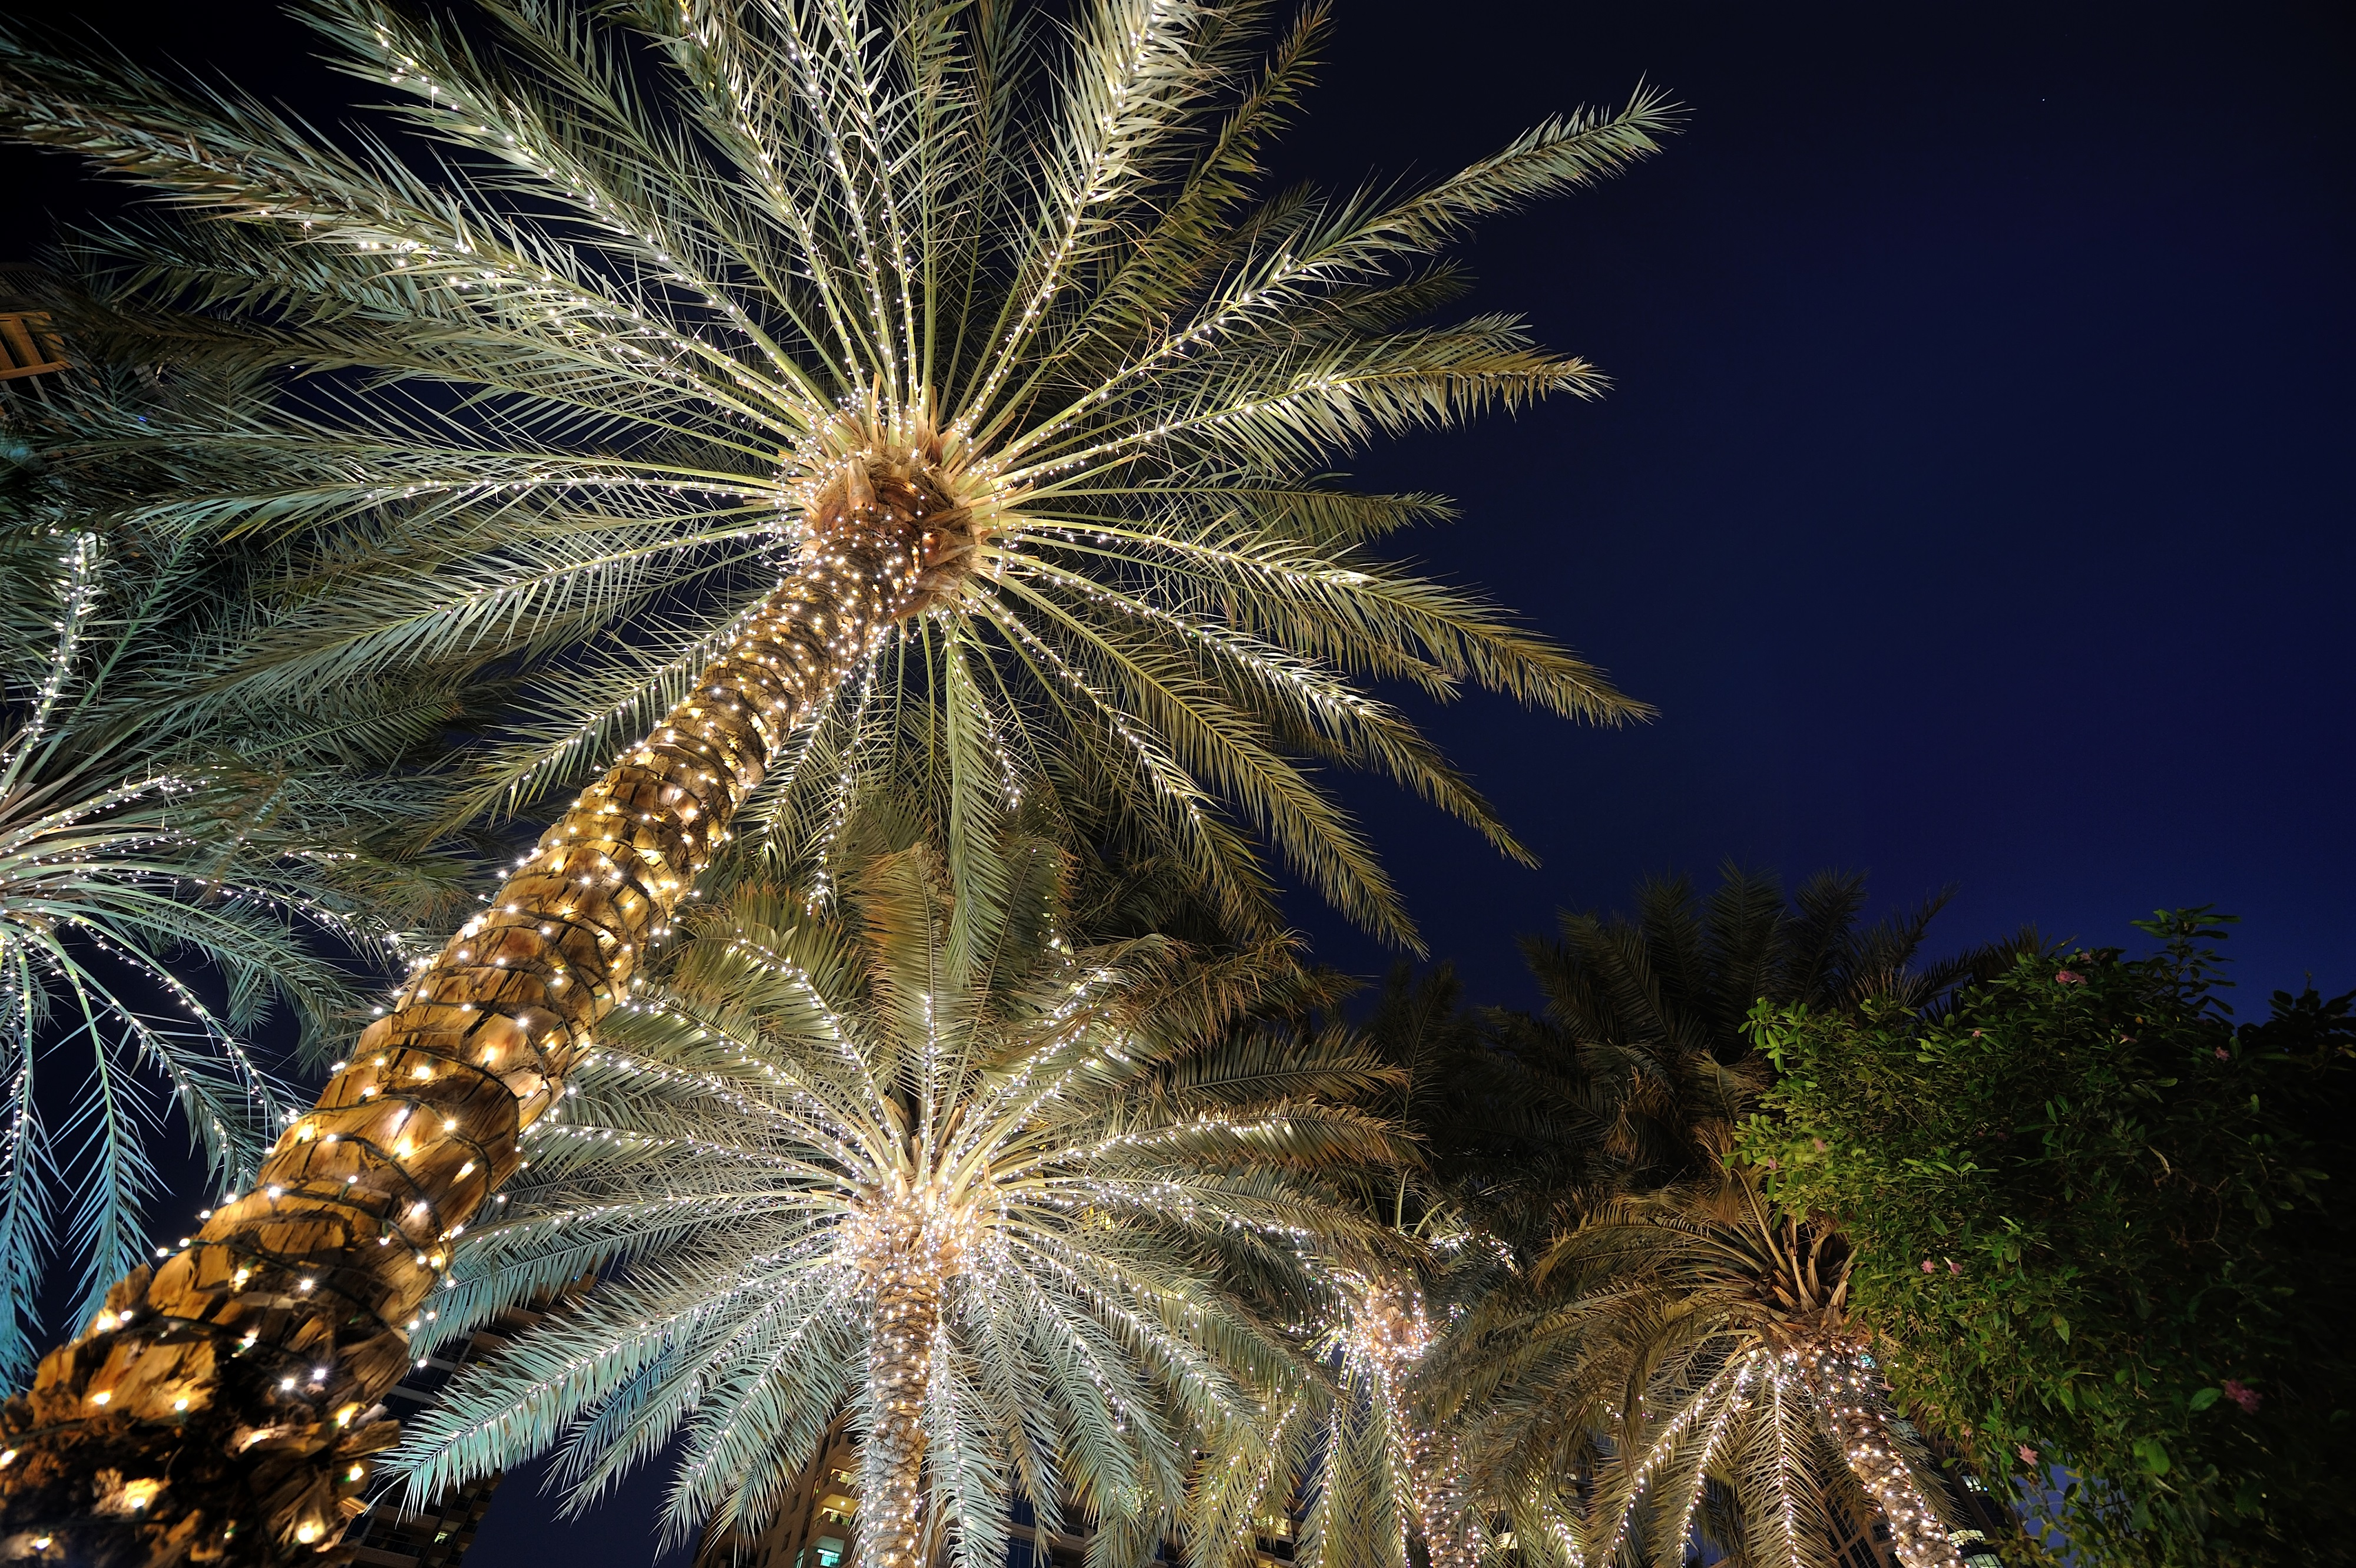 Palm Tree Lights Christmas.We Have Your Holiday Wilmington Palm Tree Lighting All